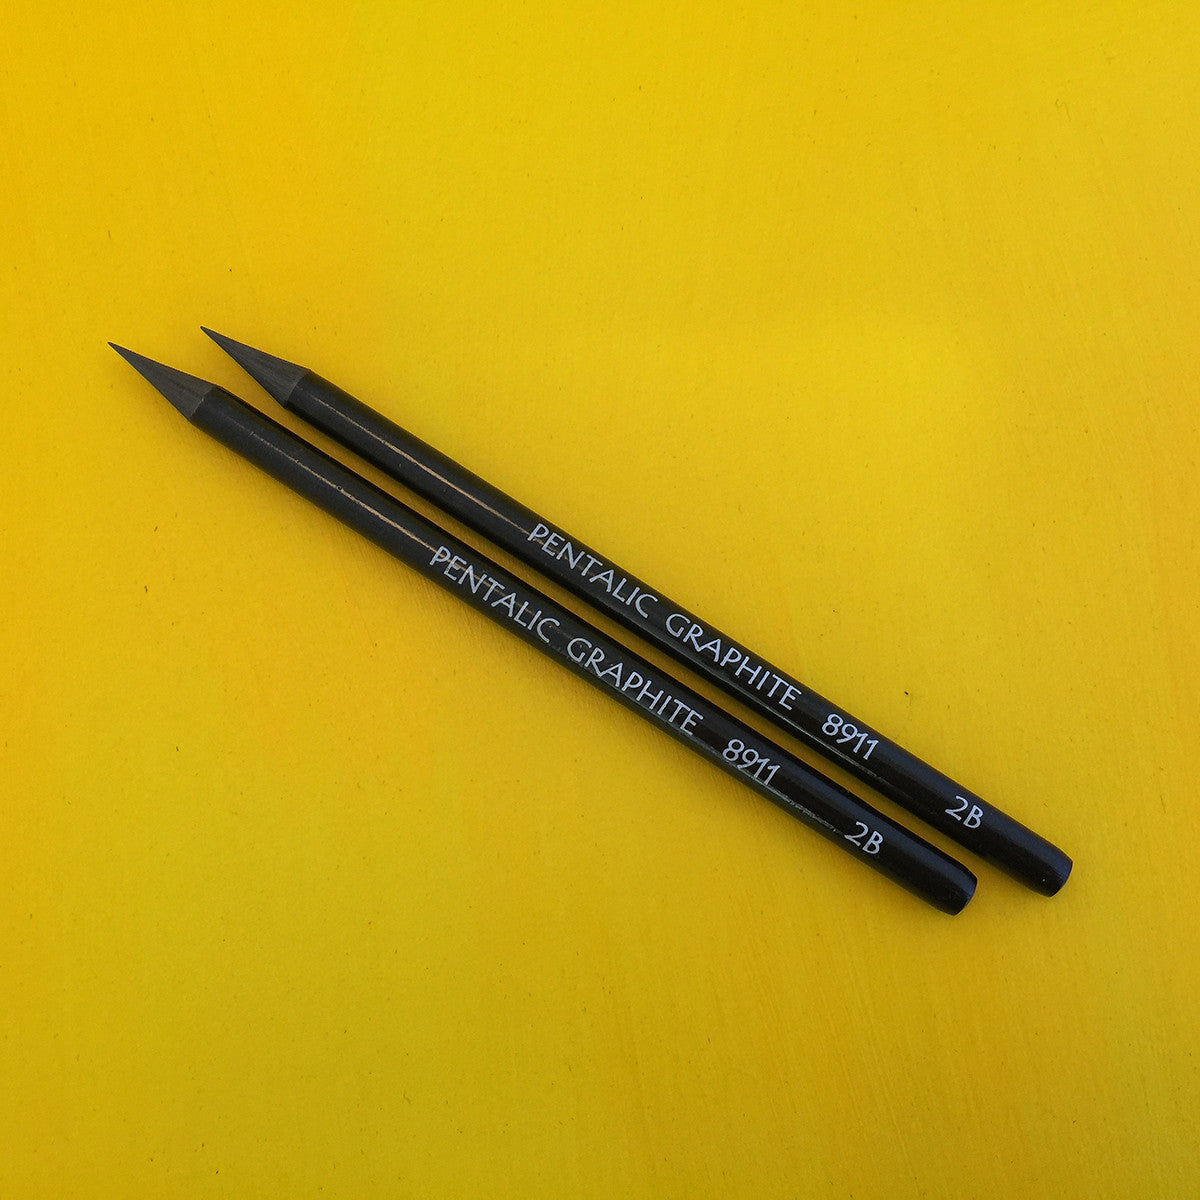 Pentalic Woodless Graphite Pencil